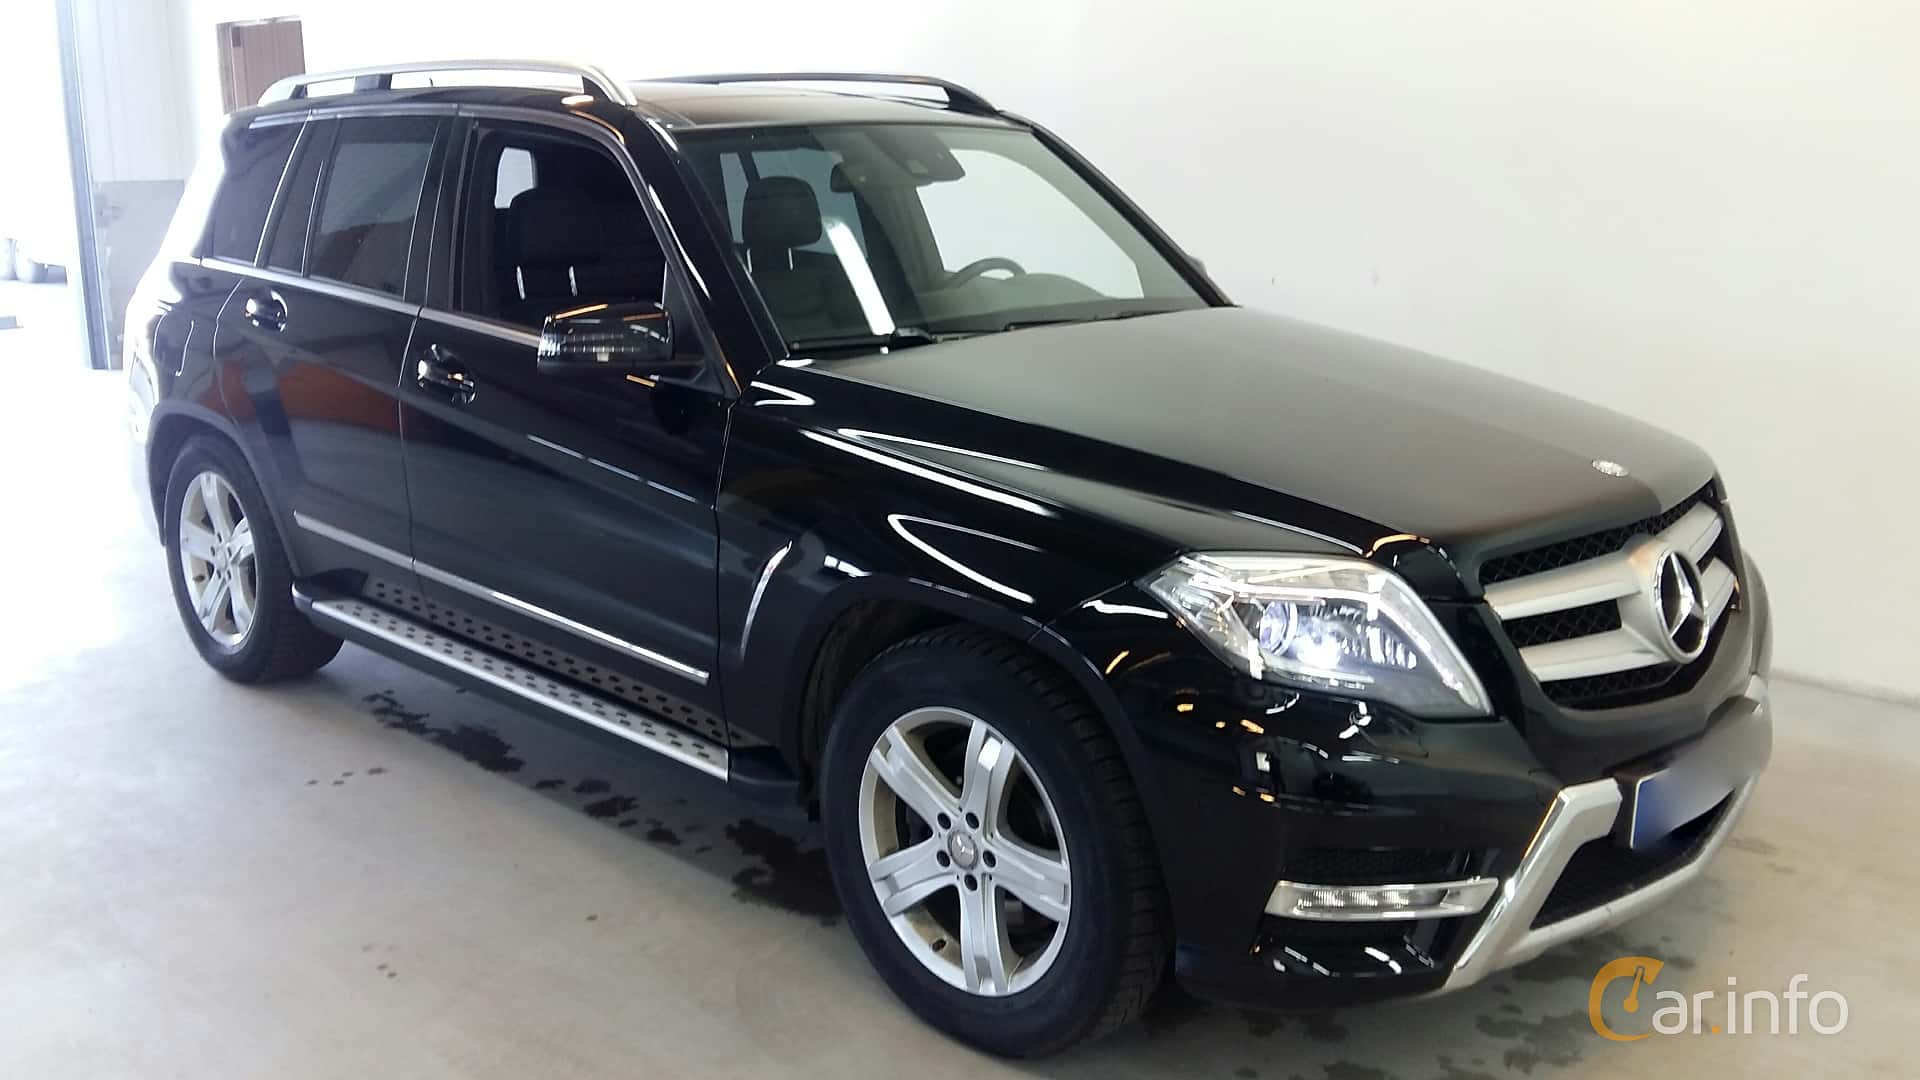 6 images of Mercedes Benz GLK 350 CDI 4MATIC 7G Tronic Plus 265hp